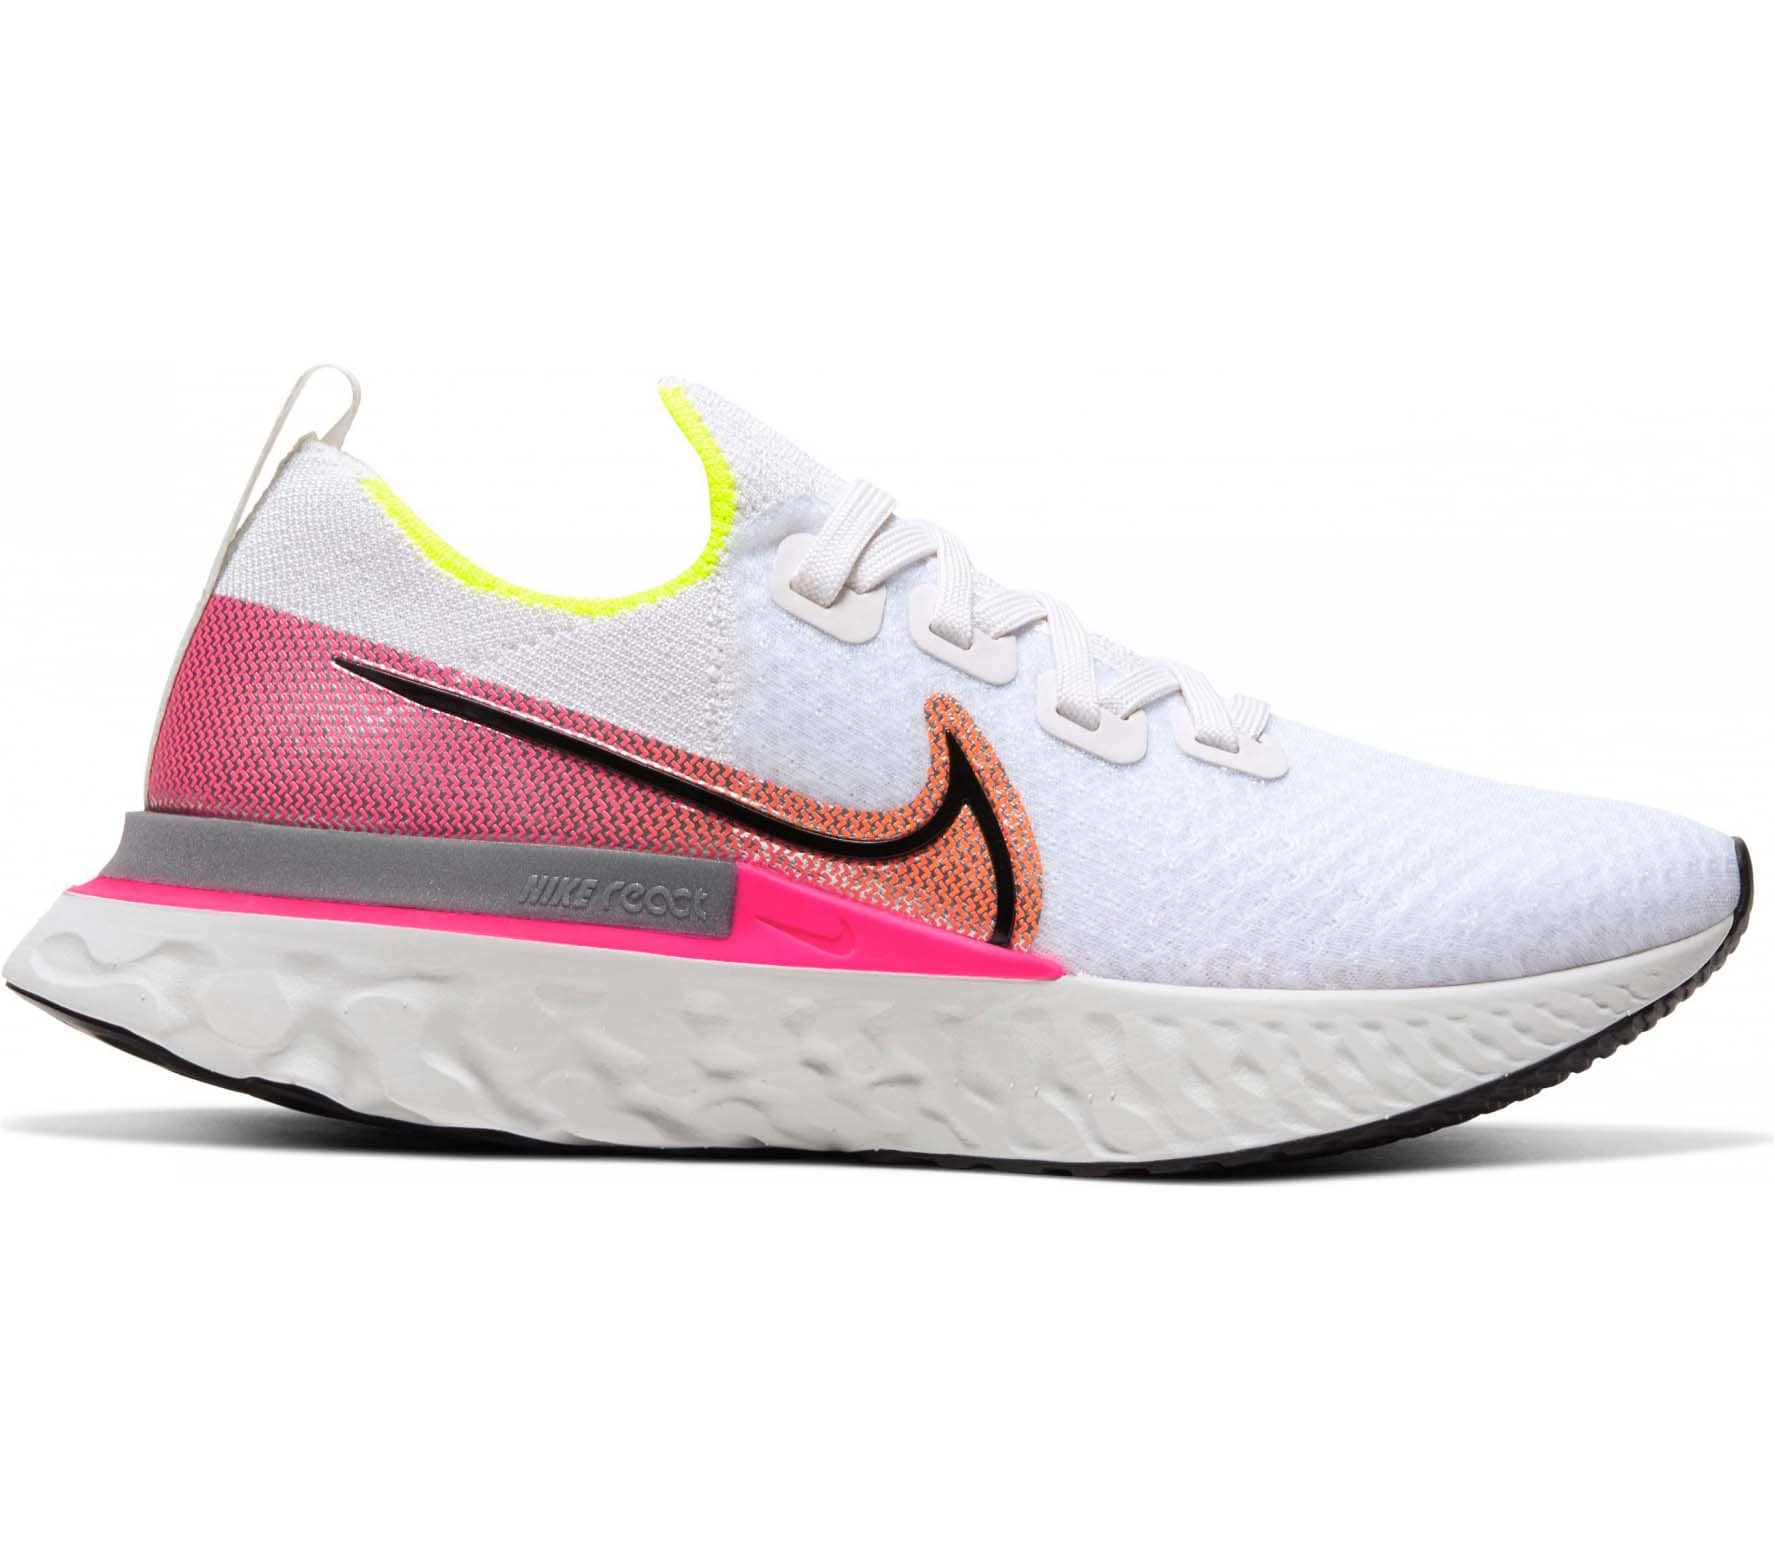 Nike React Infinity Run Flyknit Women Running Shoes (white) 159,90 €